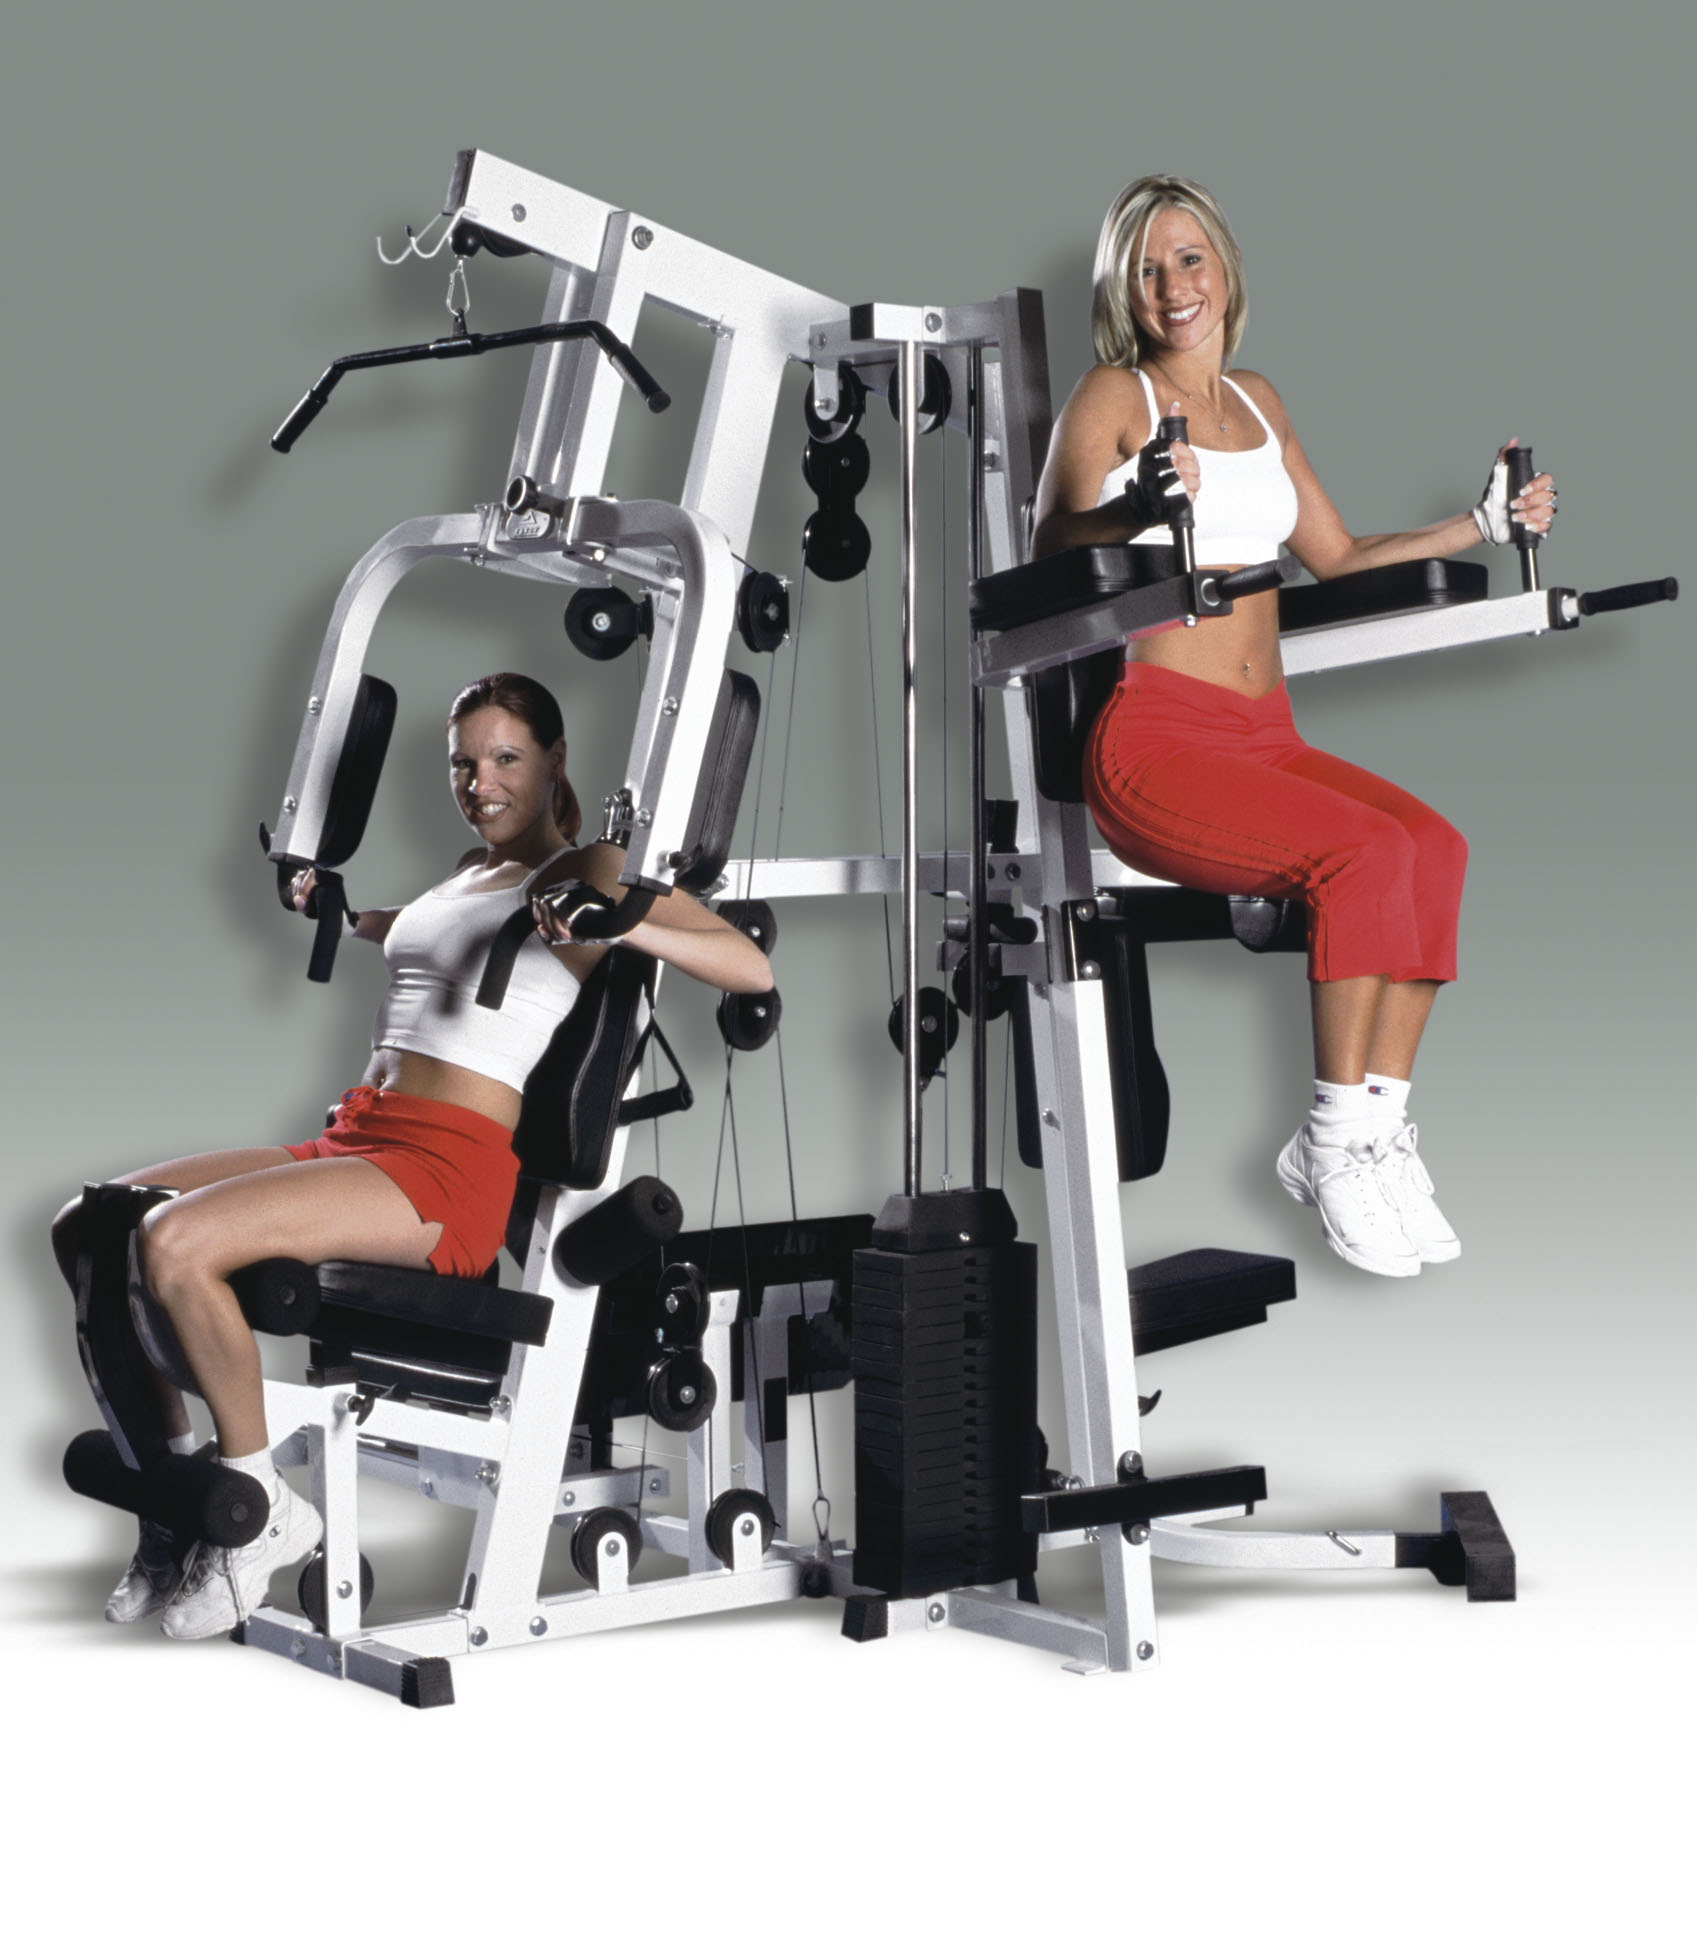 Top Exercise Equipment: Buy Exercise Equipment In Greenbrae